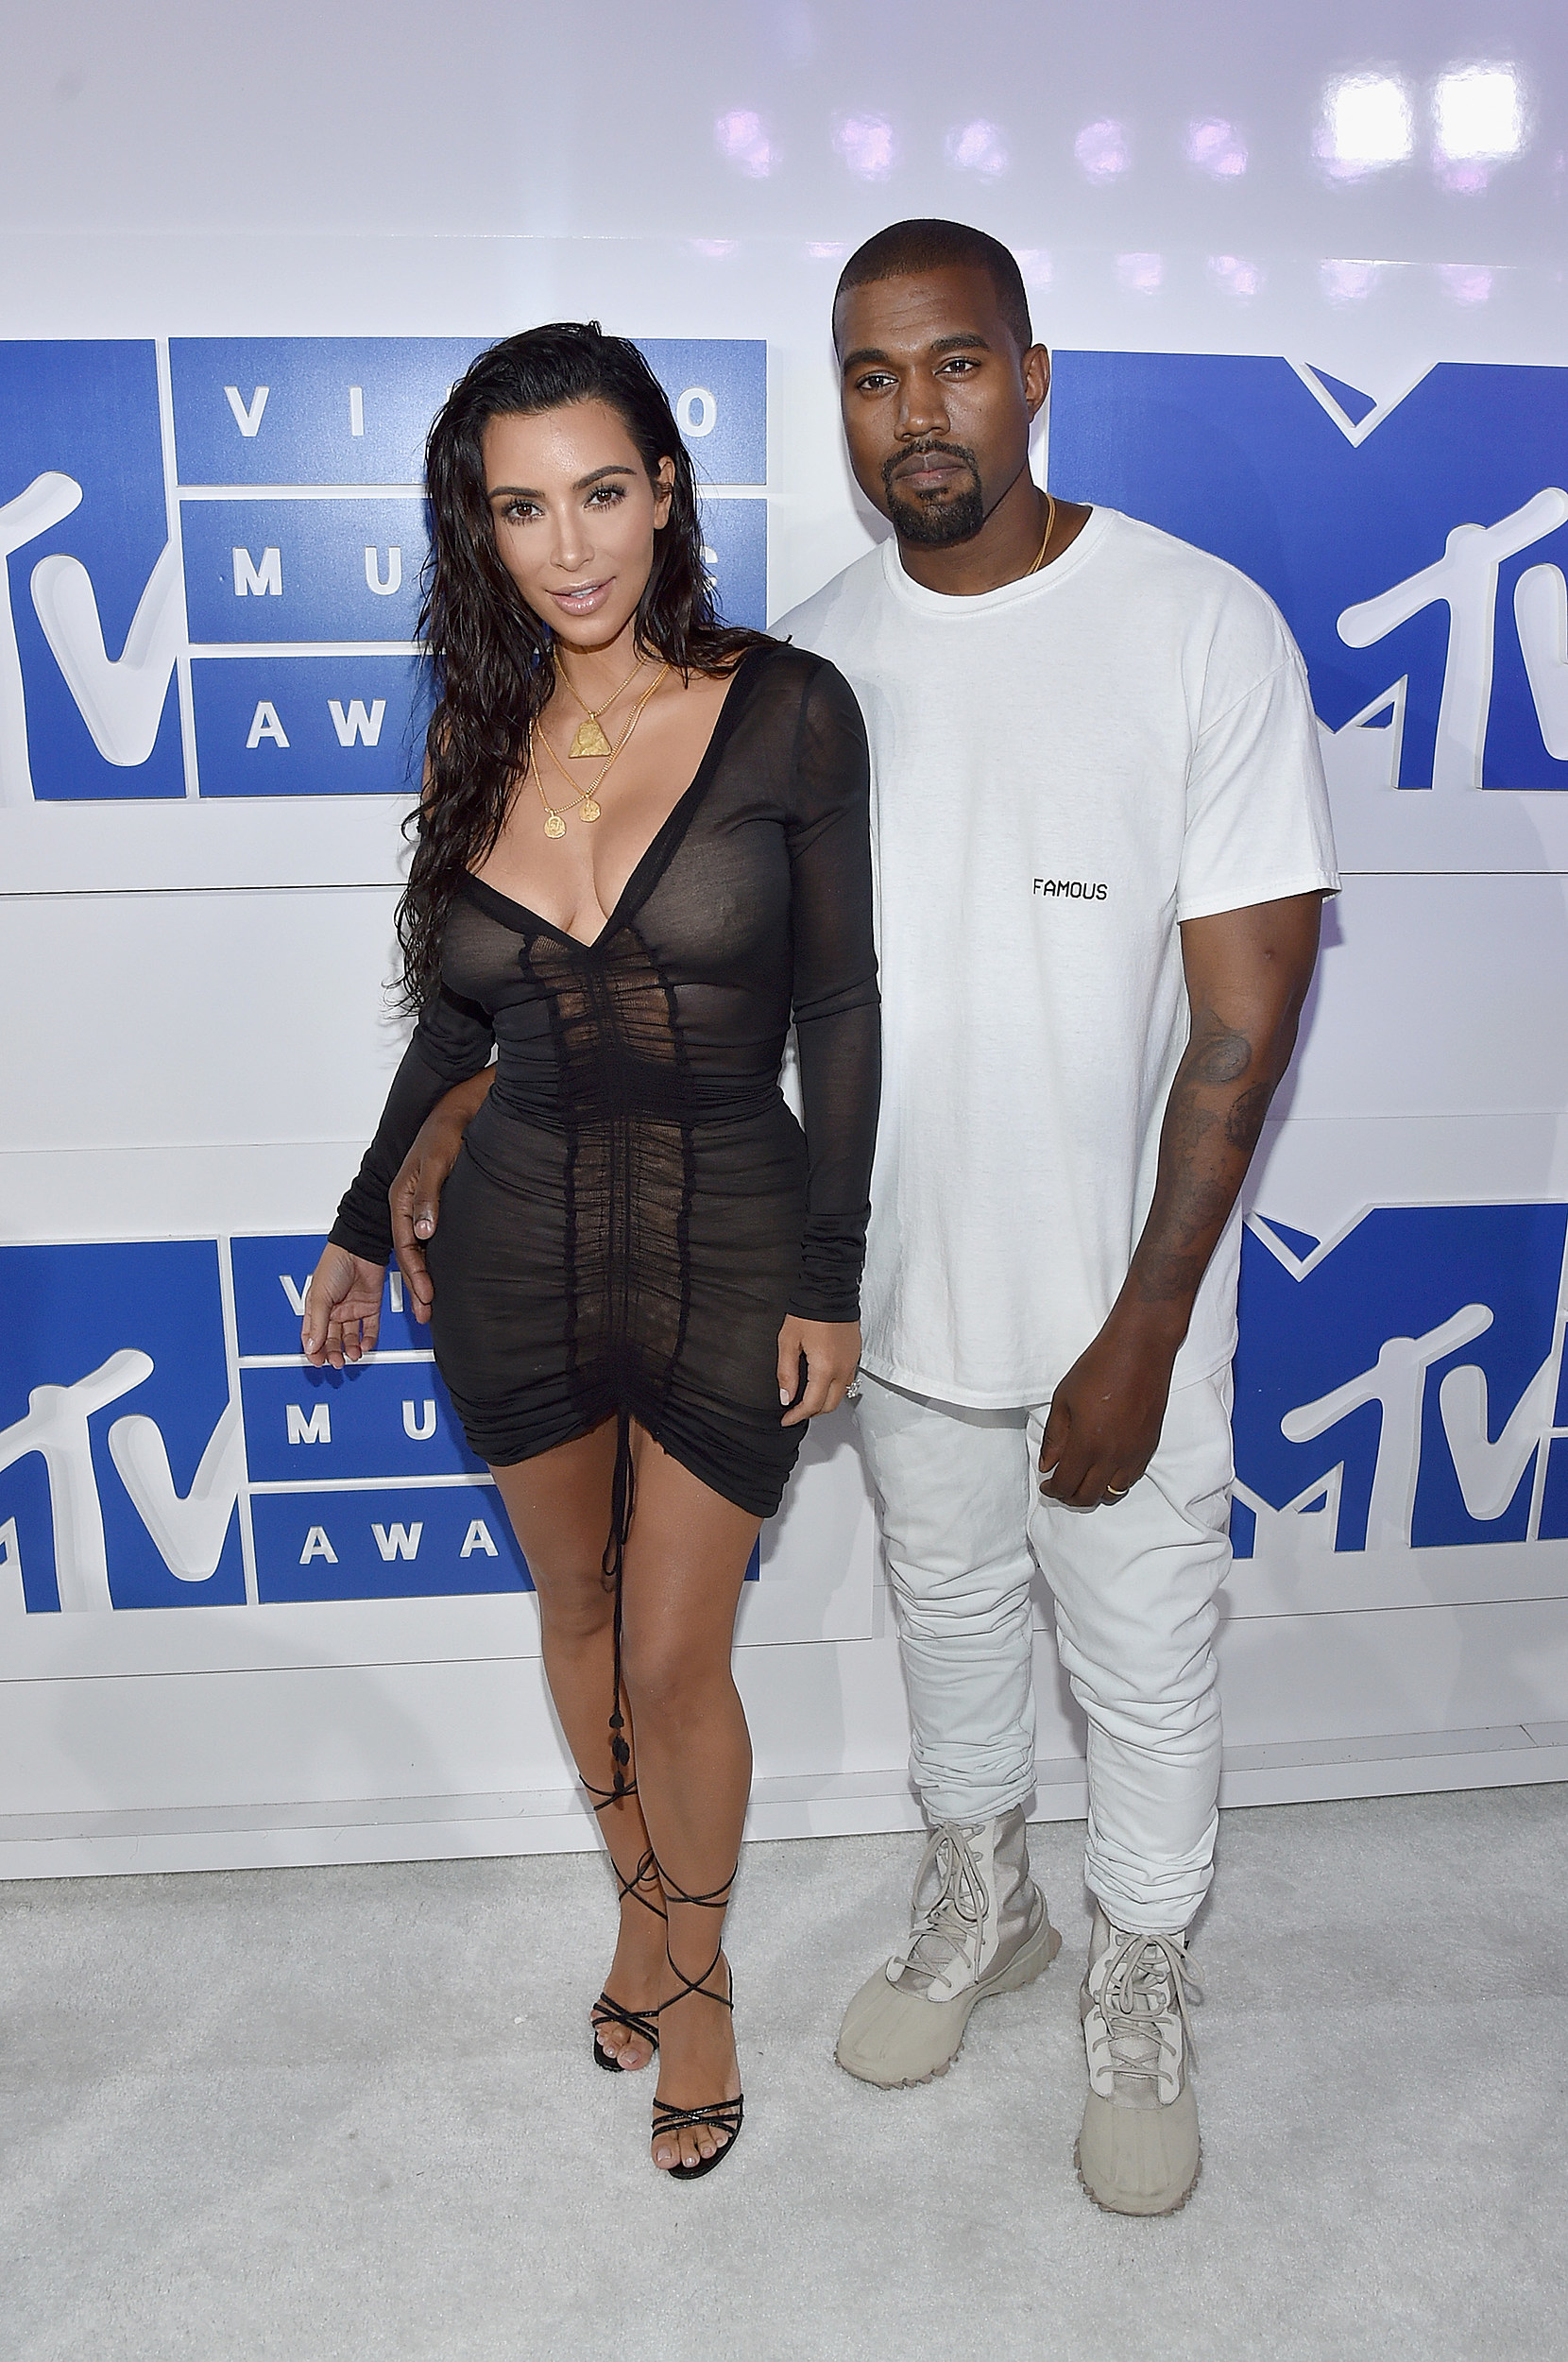 Kanye West Postpones Tour Dates After Kim Kardashian's Paris Robbery news